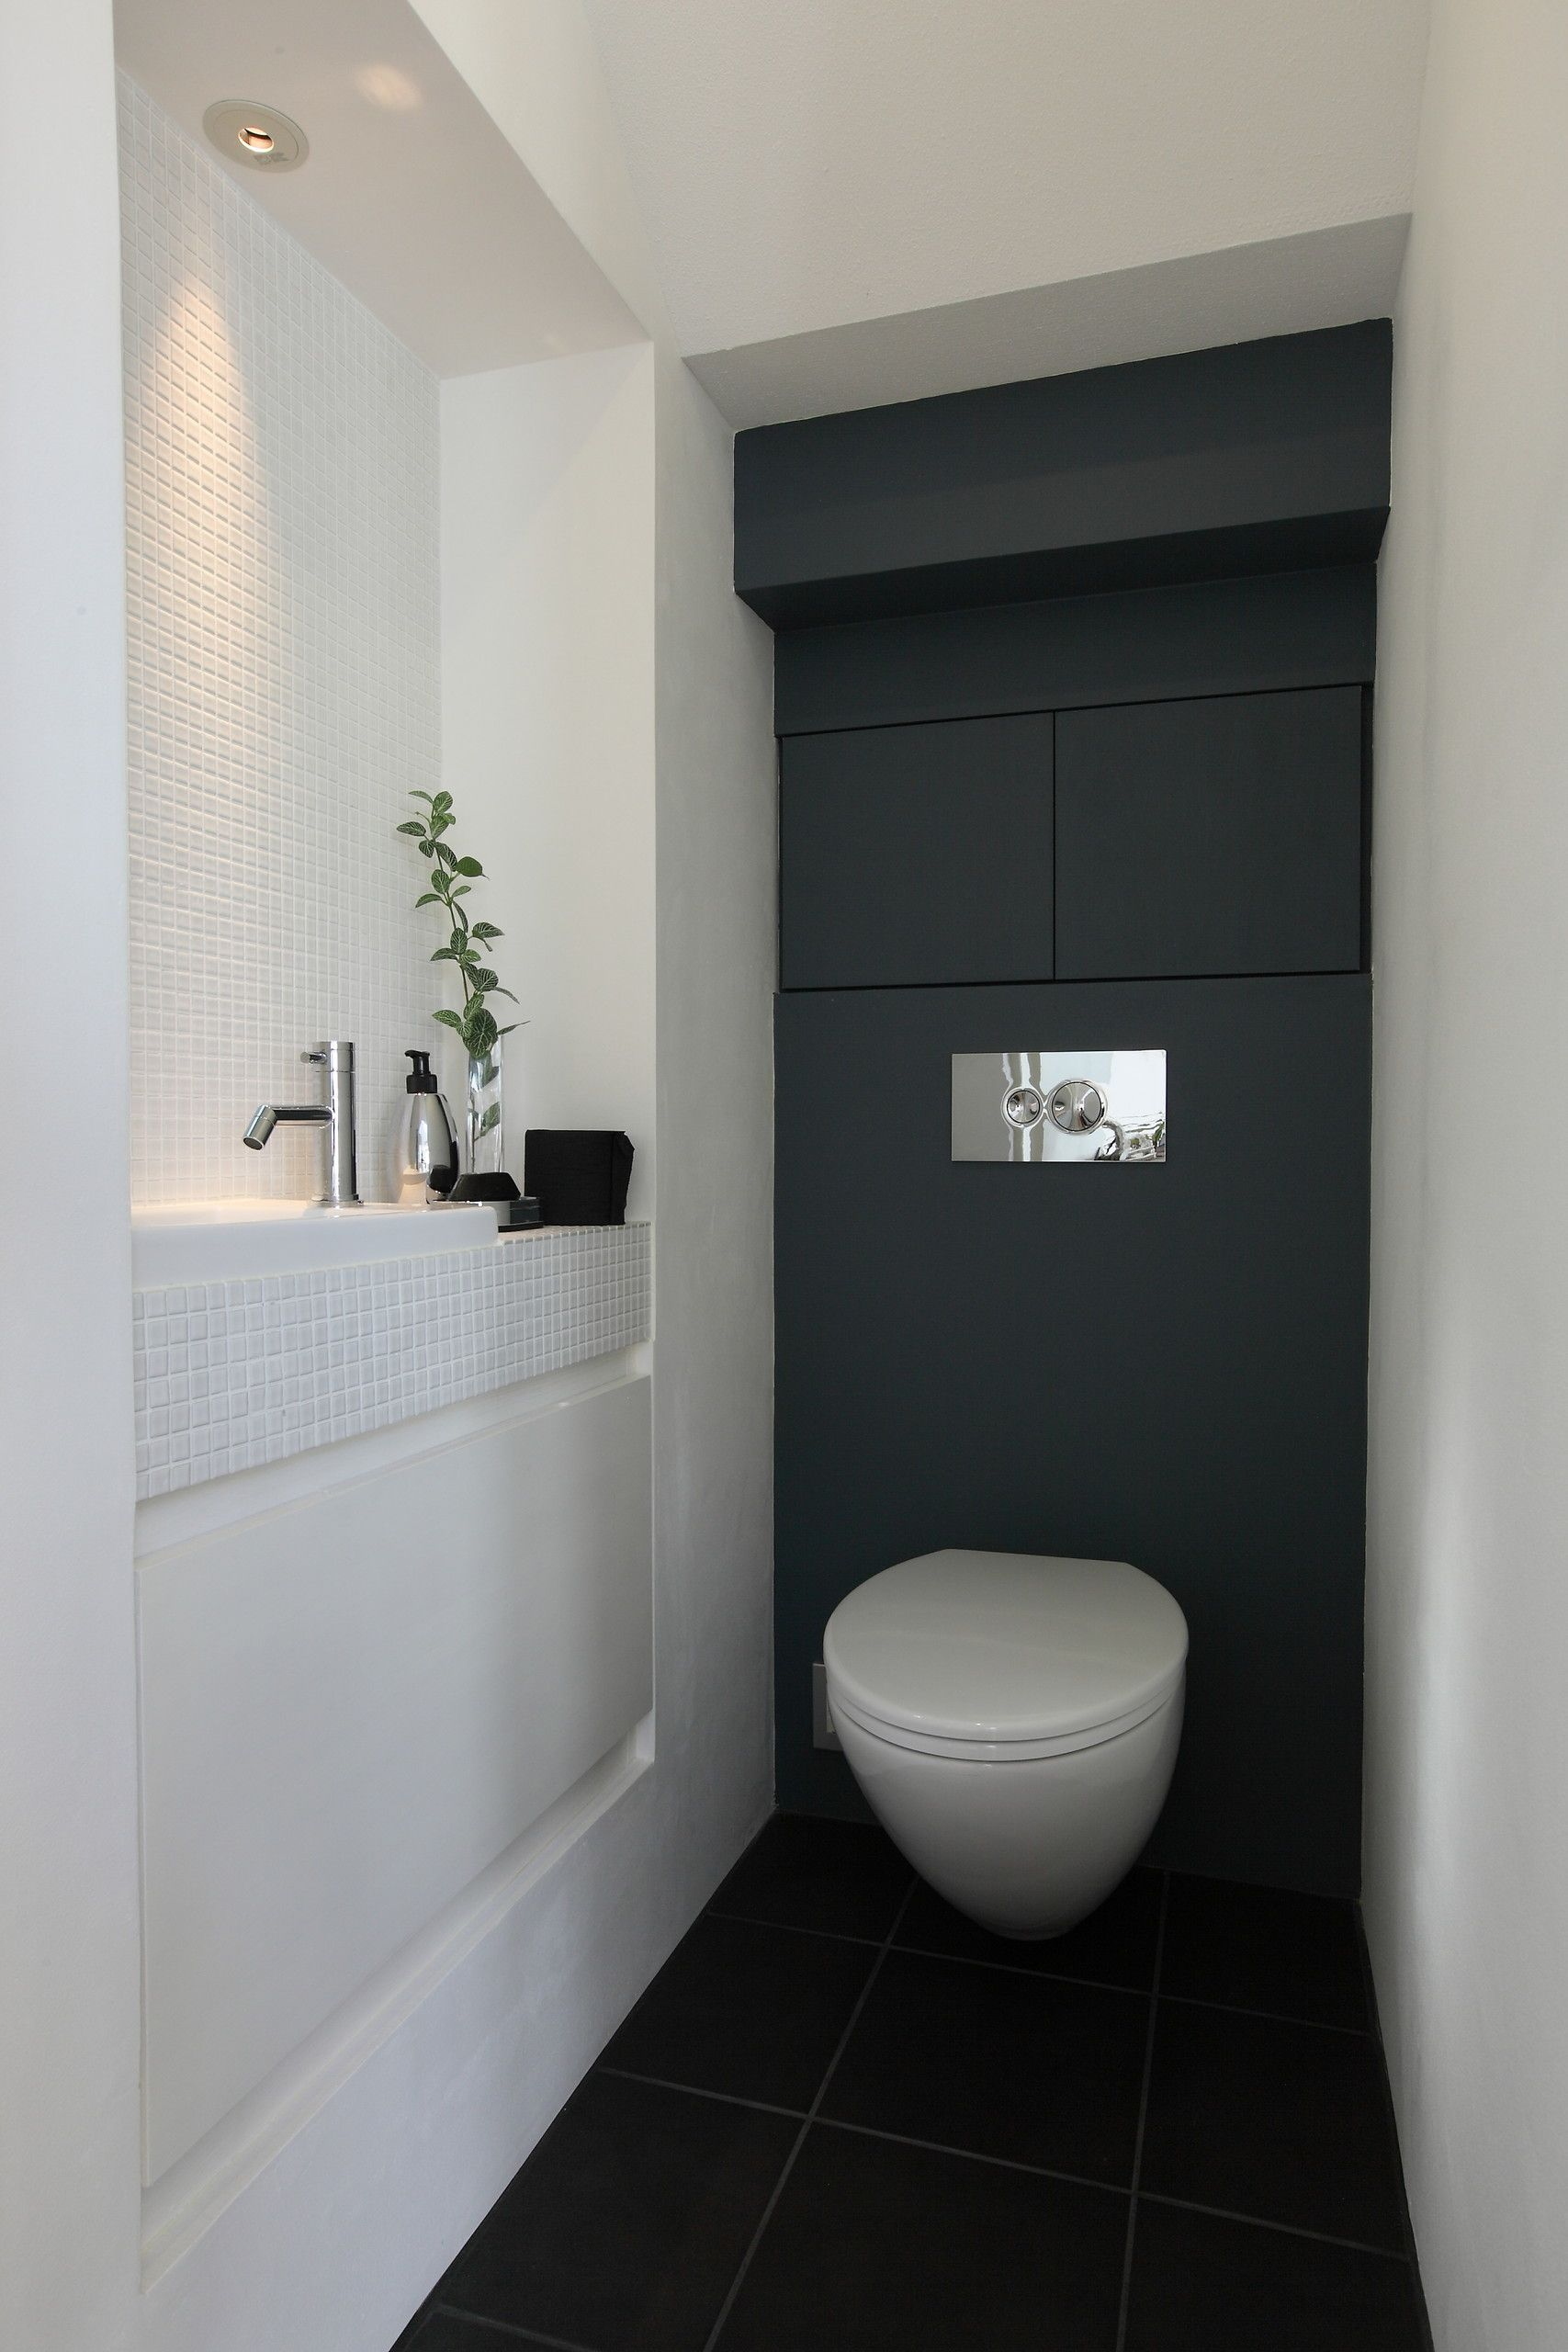 Walls · Minimalist BathroomArchitect DesignSmall ToiletDesign ...